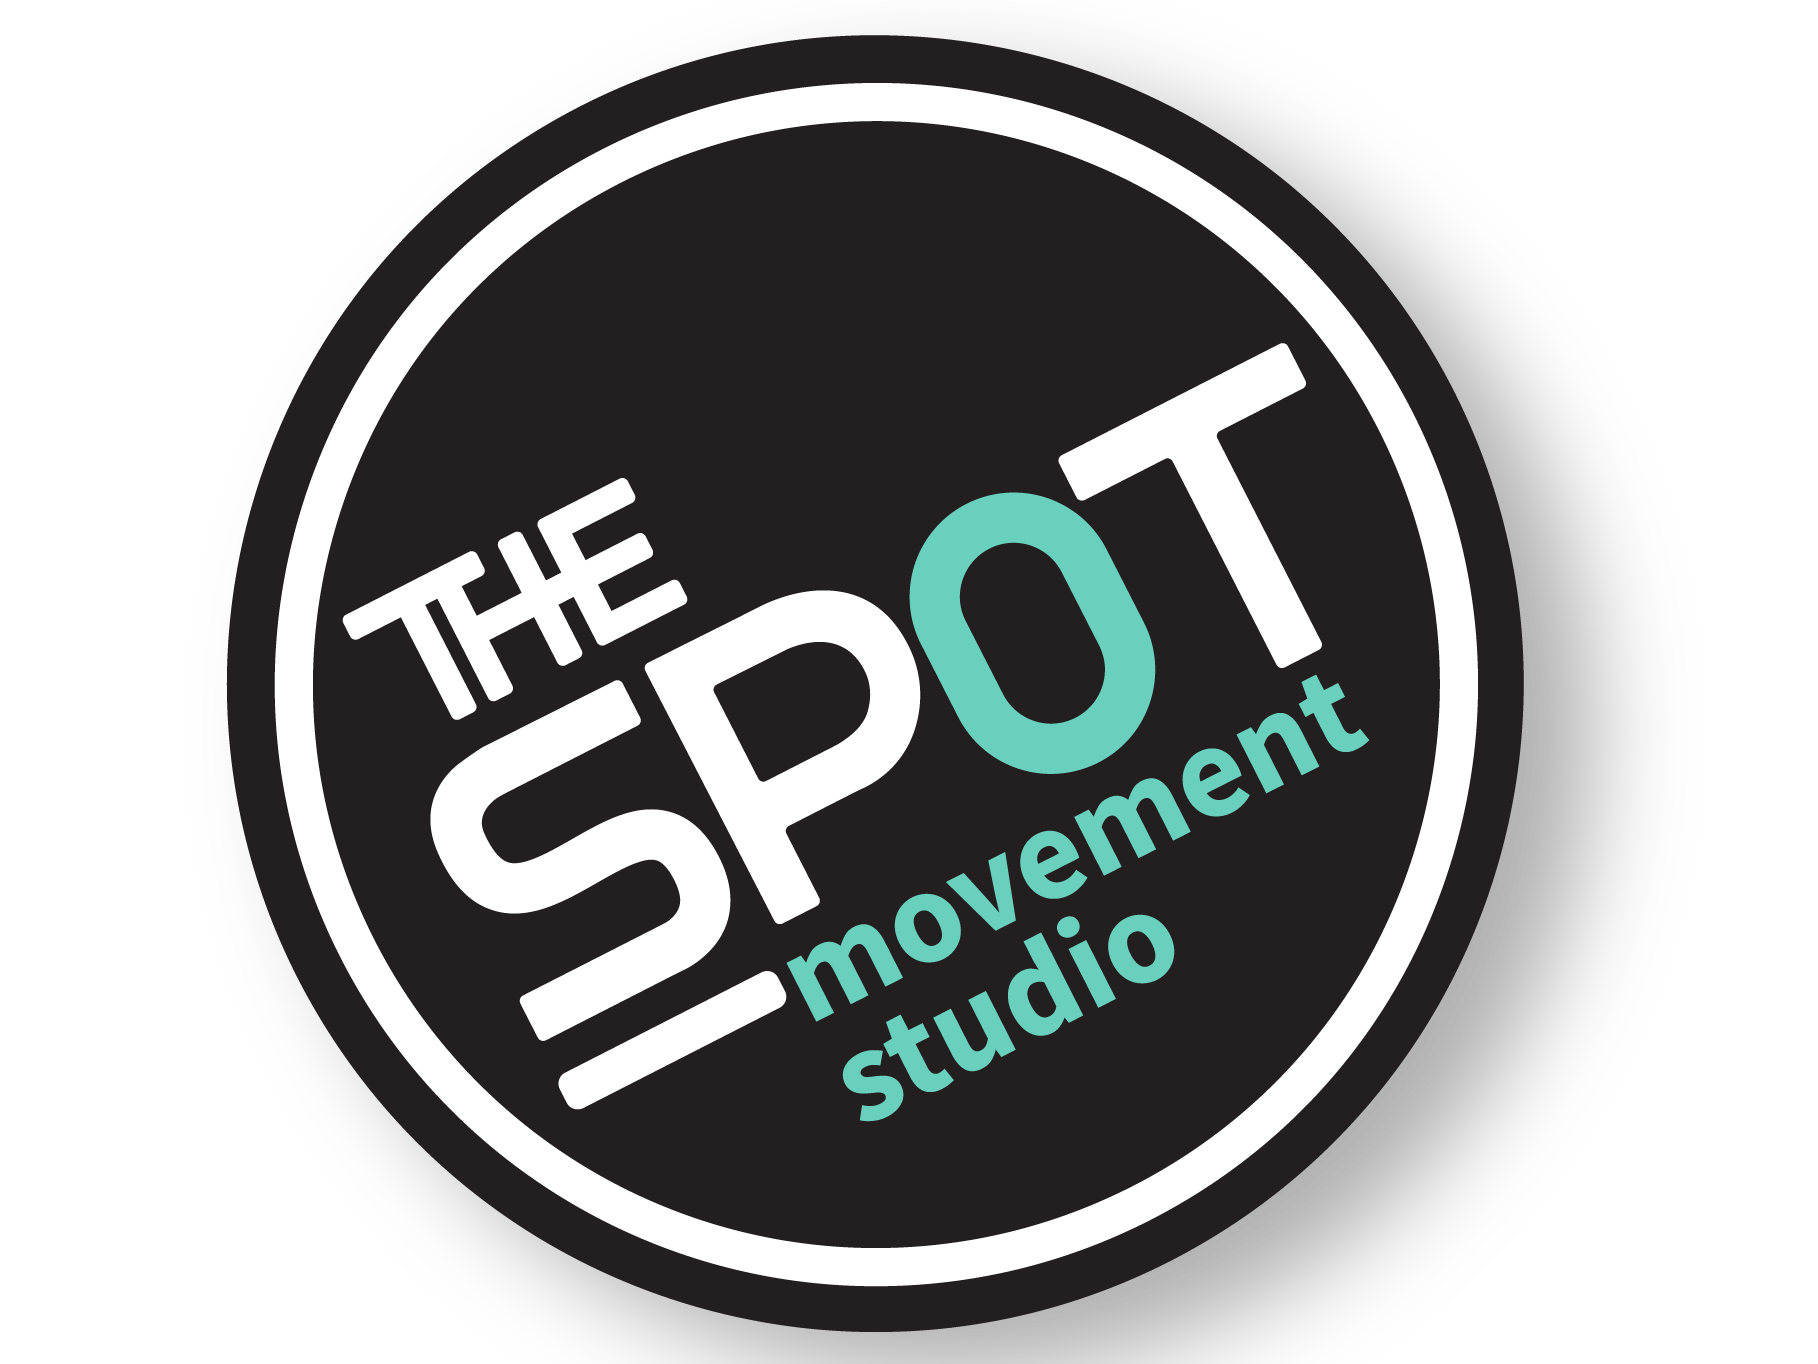 THE SPOT - MOVEMENT STUDIO